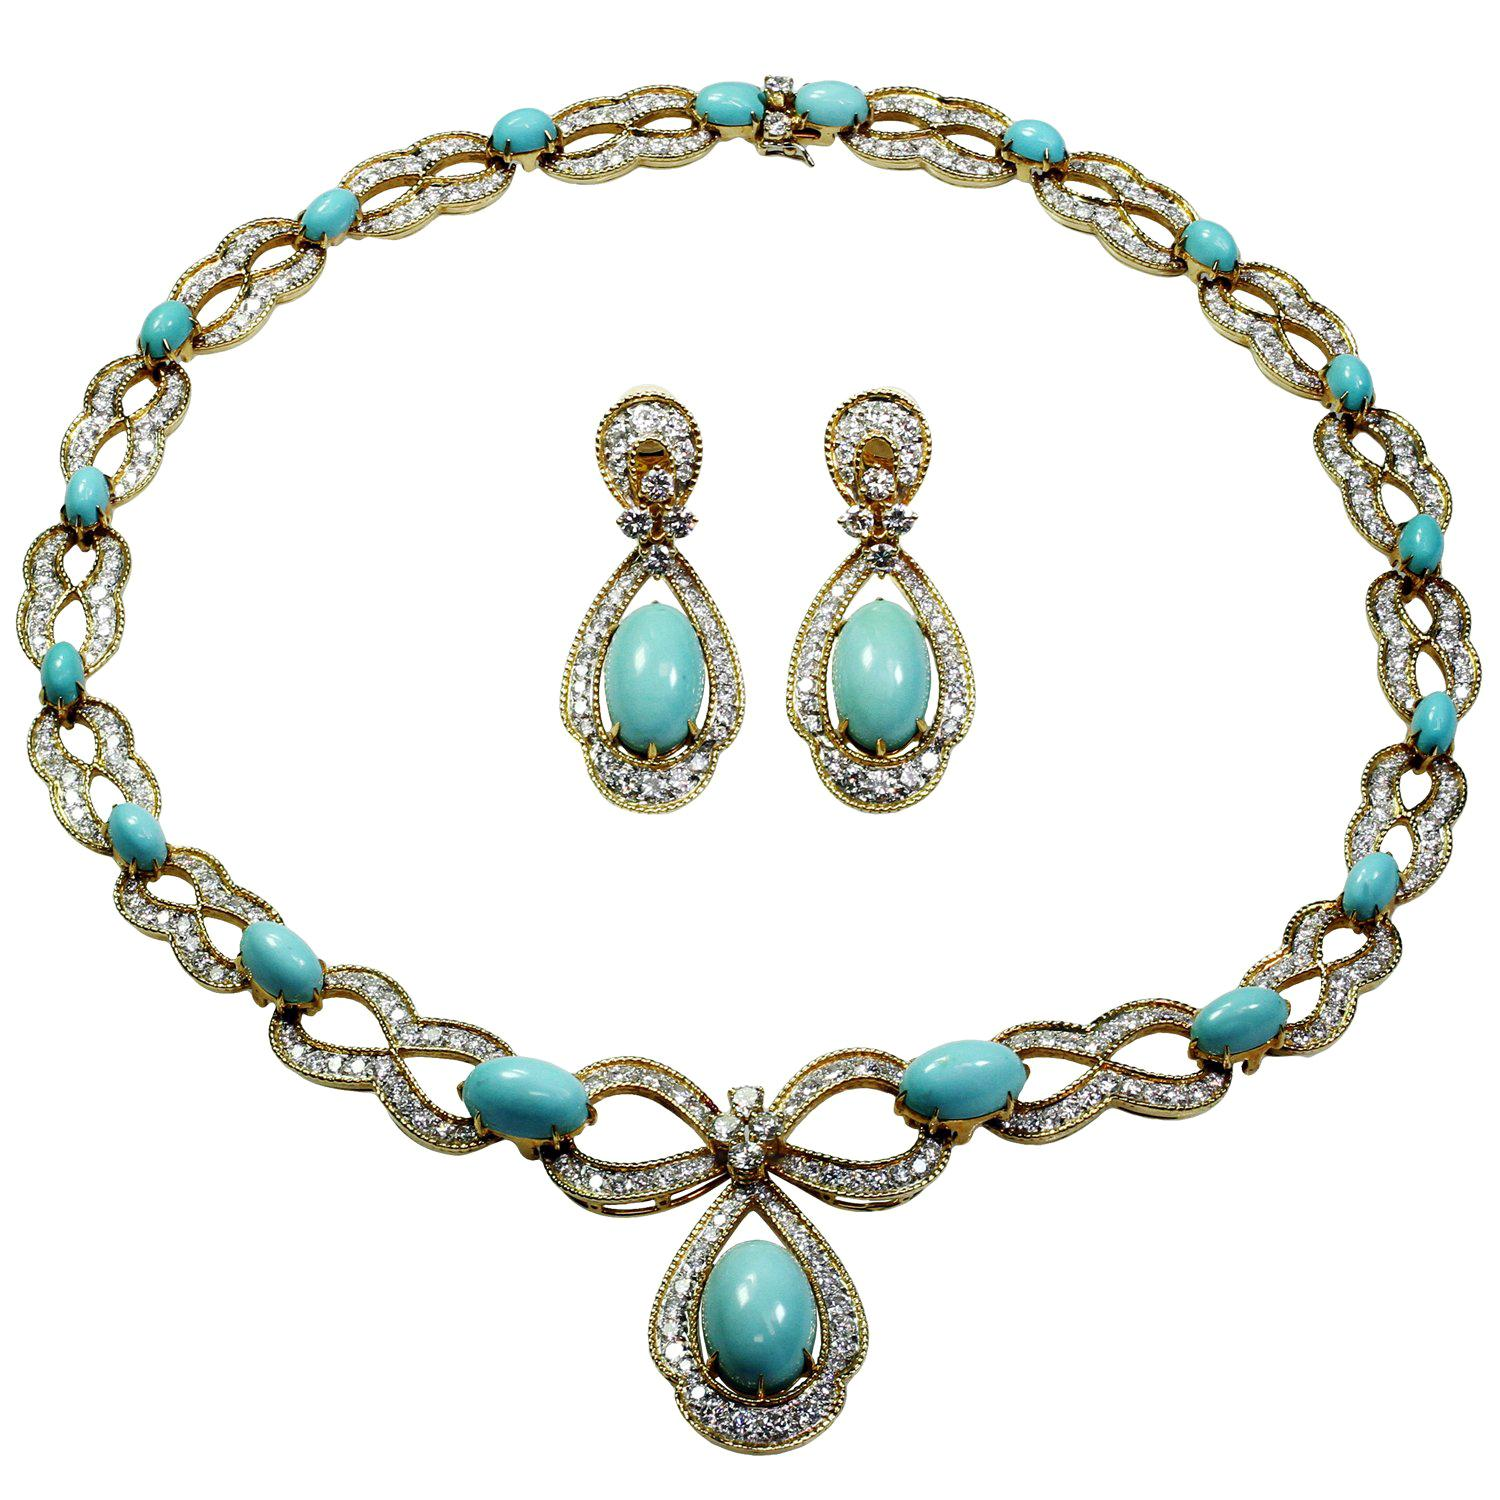 Asprey 1970s Diamond Turquoise Yellow Gold Necklace and Earrings Set